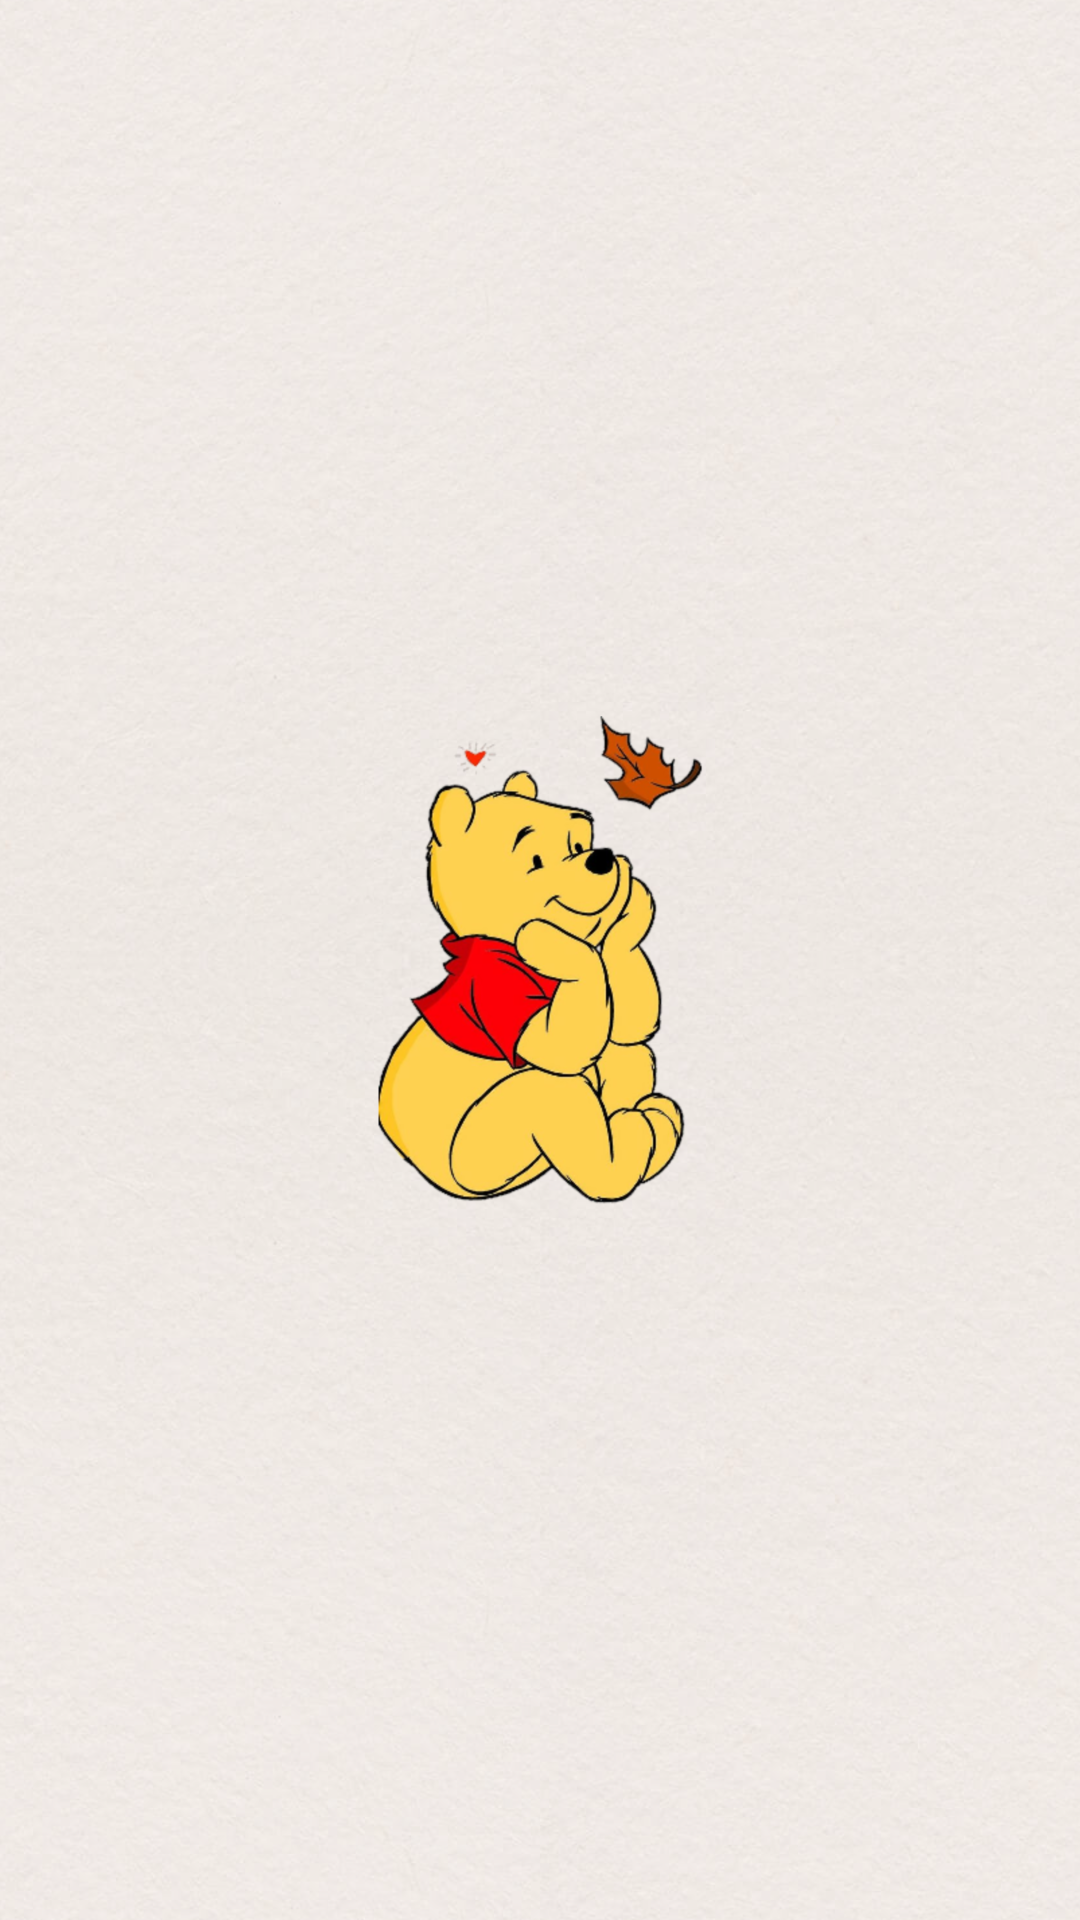 Aesthetic Yellow Winnie The Pooh Wallpapers - Wallpaper Cave